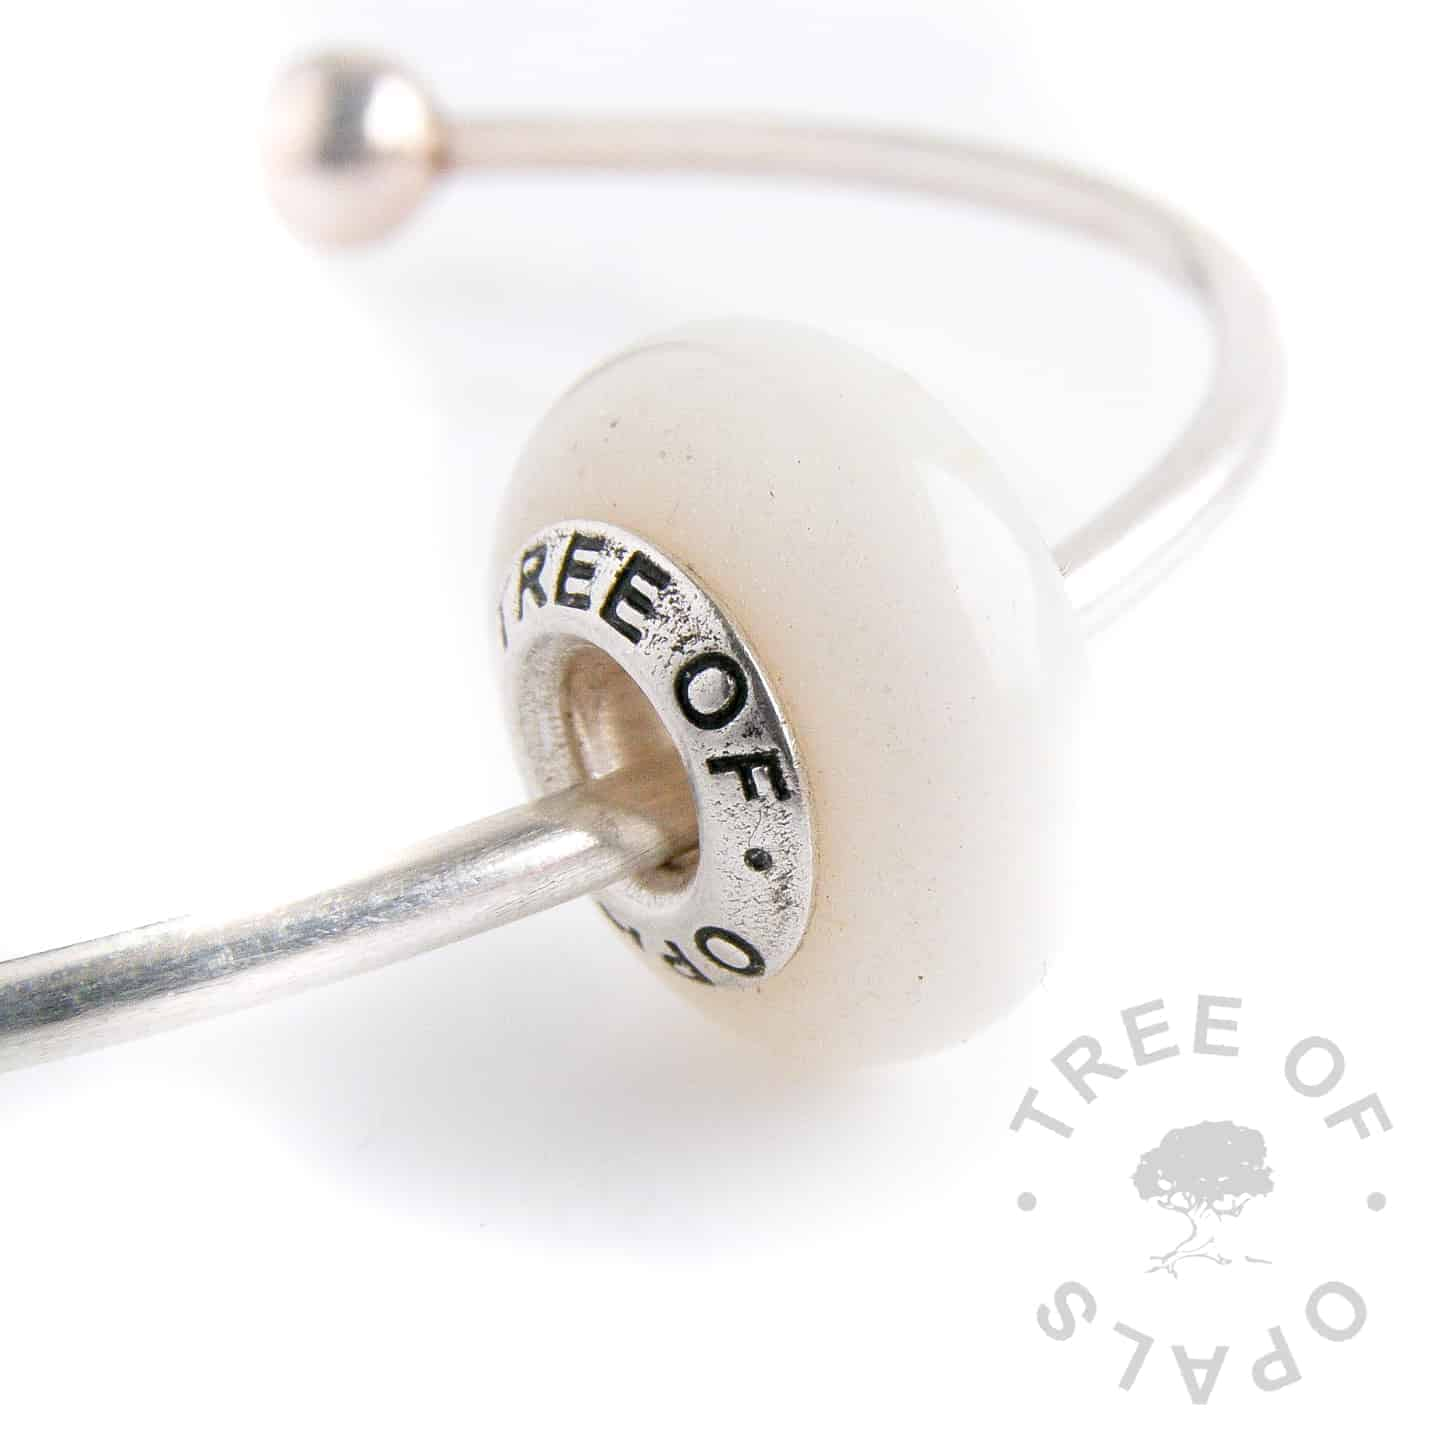 breastmilk charm bead with diamond powder for two year nursing award (diamond boobies) or the April birthstone for your baby.  Set with a solid sterling silver Tree of Opals signature core